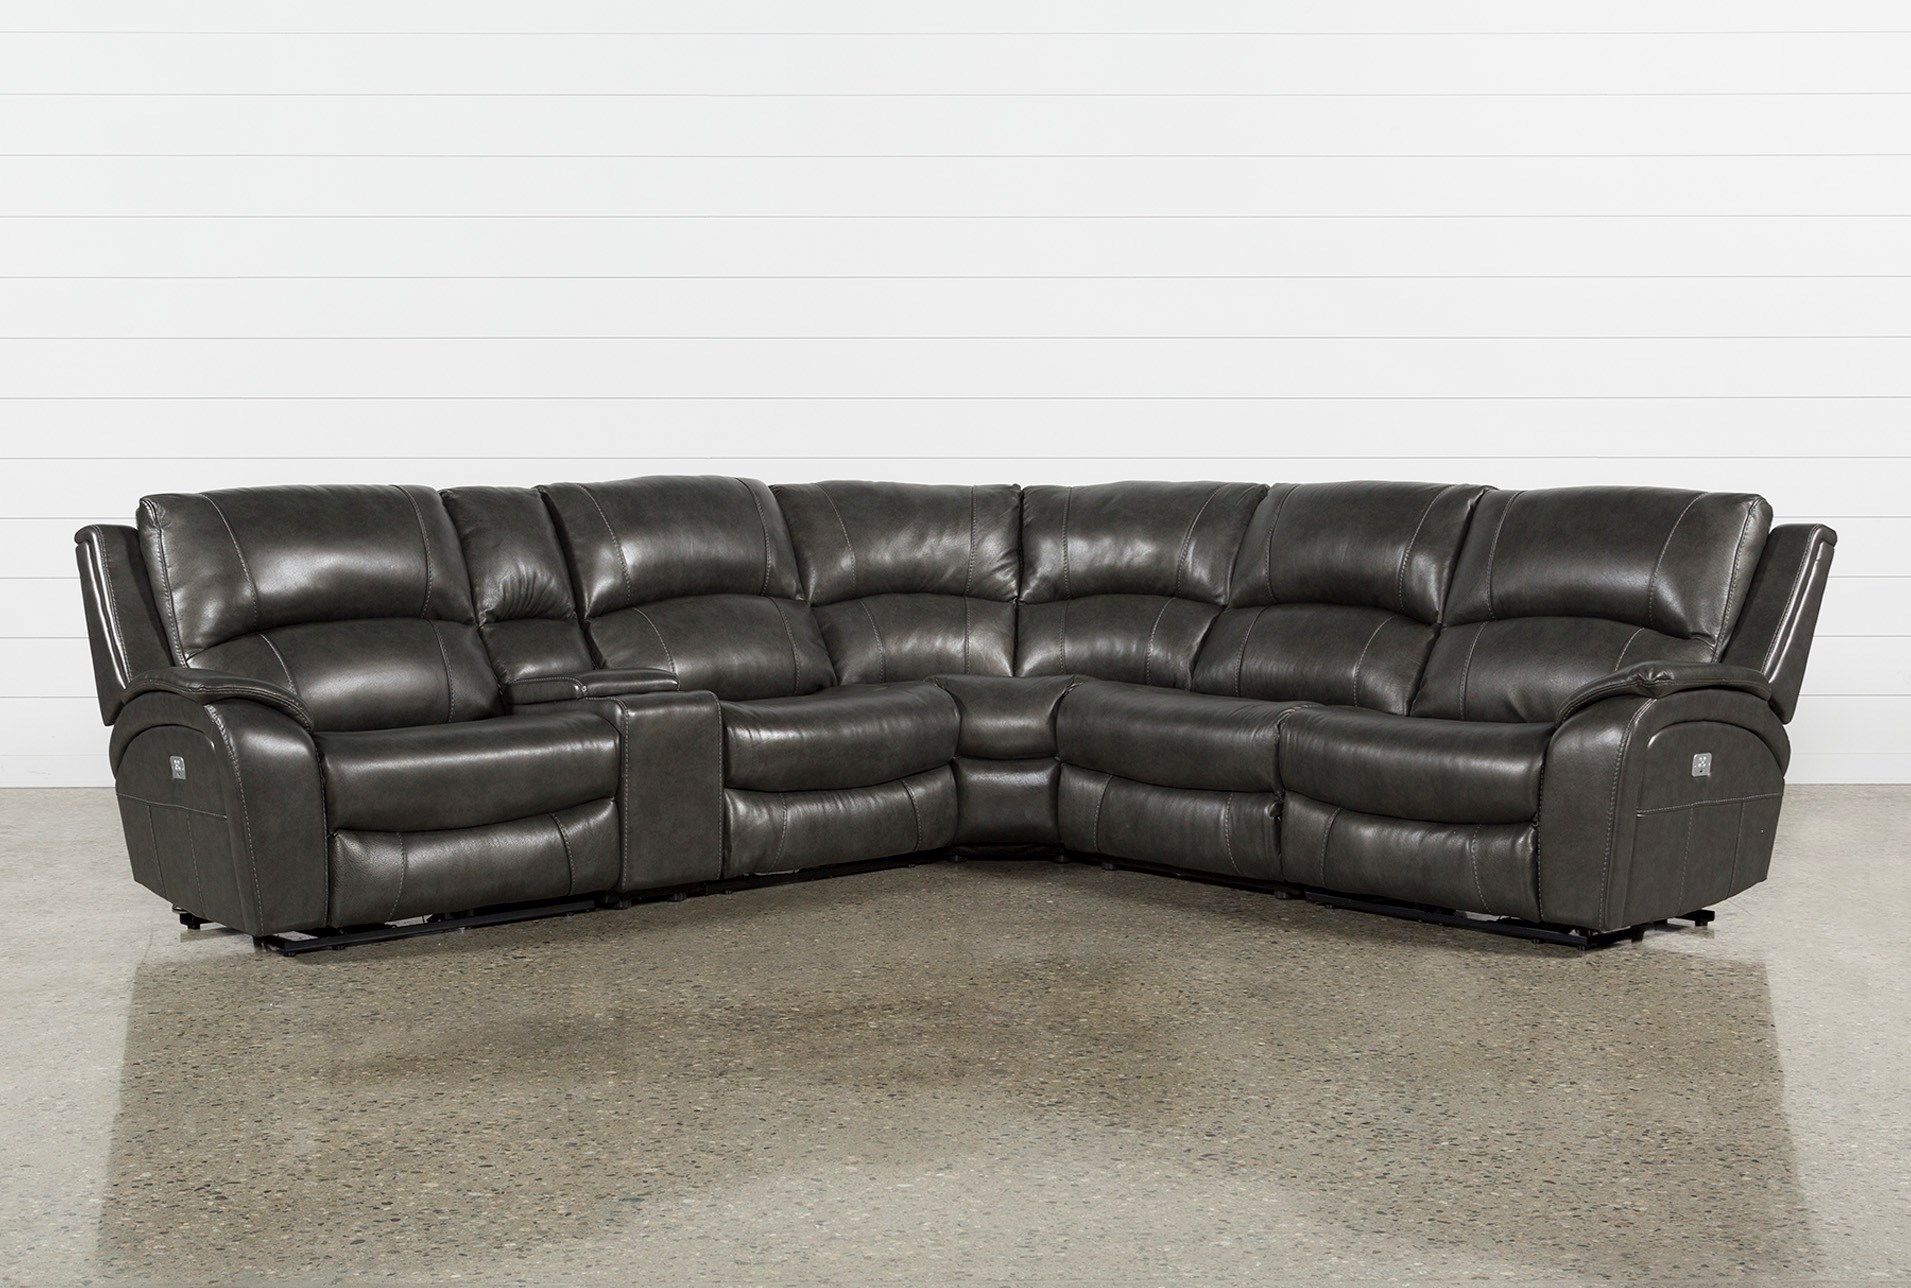 Travis Dk Grey Leather 6 Piece Power Reclining Sectional W/Pwr Hdrst ...